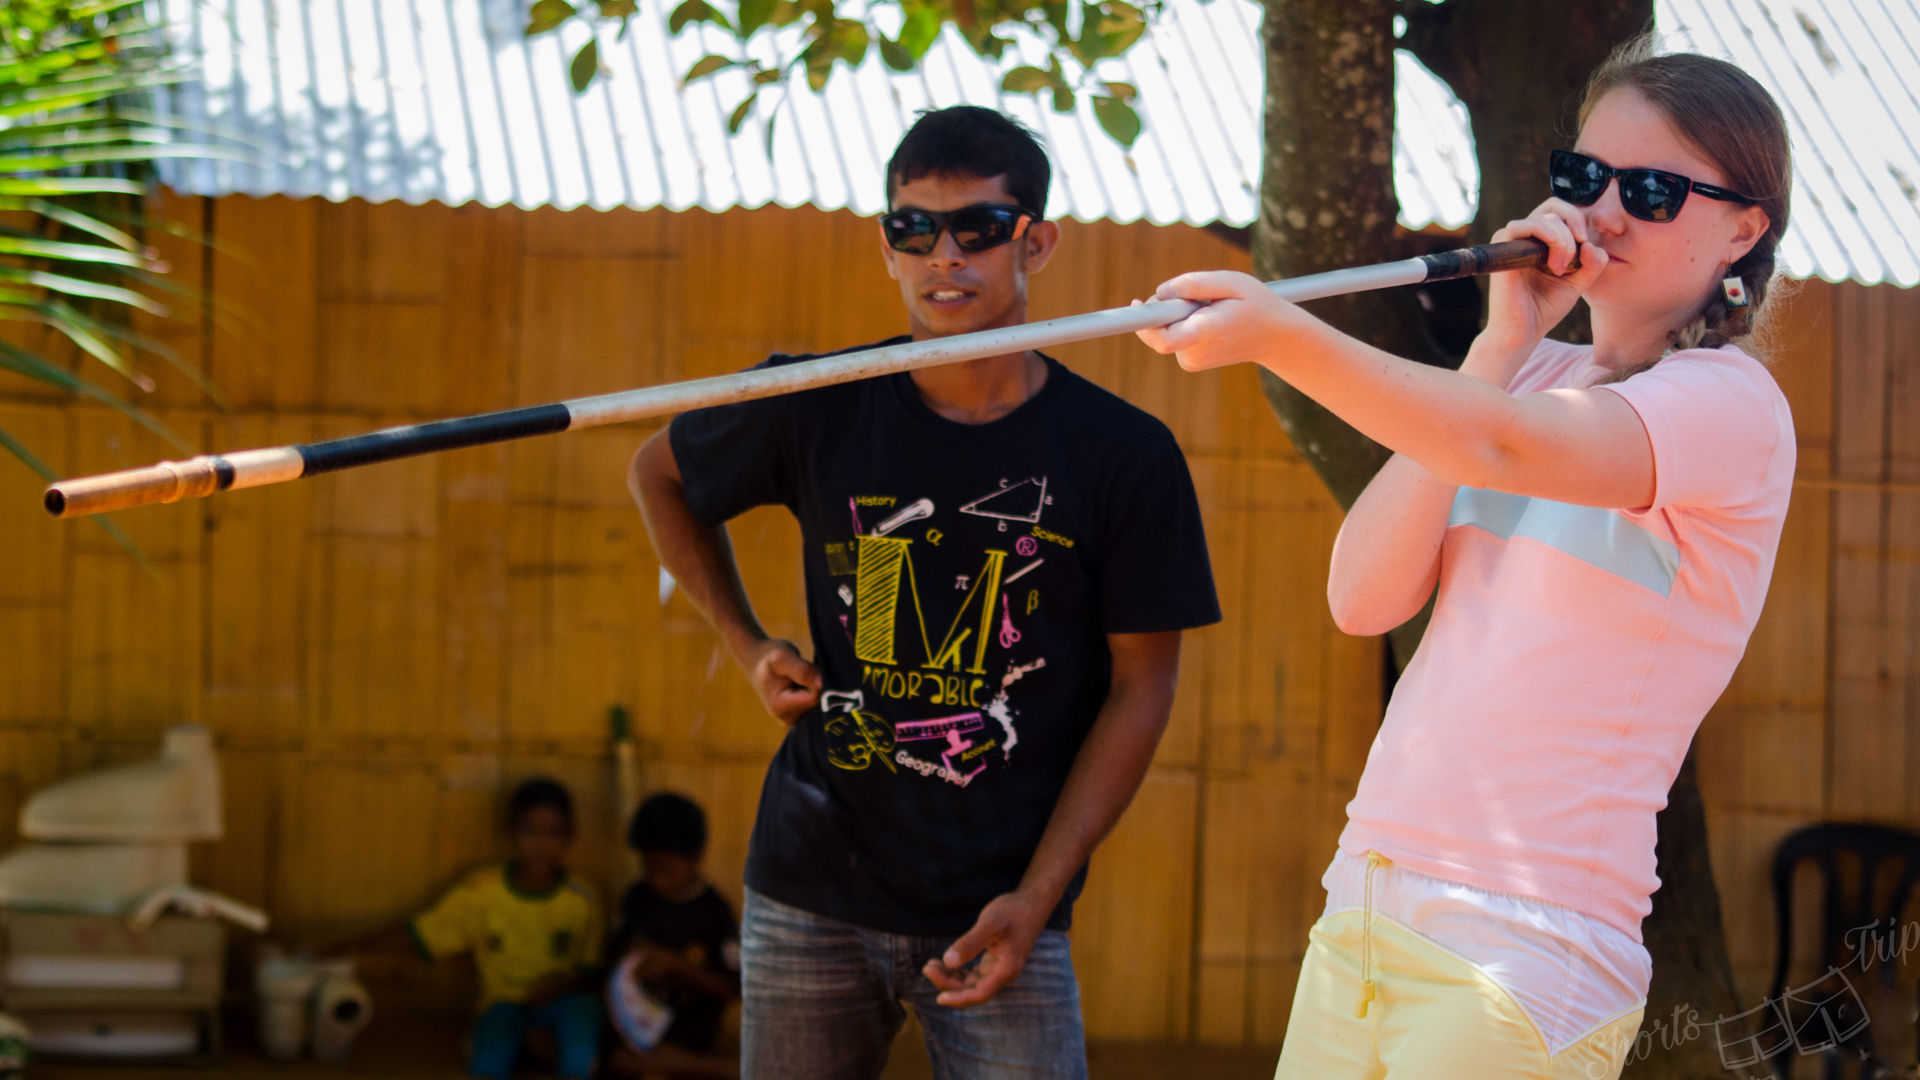 blowpipe, girl blowing blowpipe, aborigine weapon, asli weapon